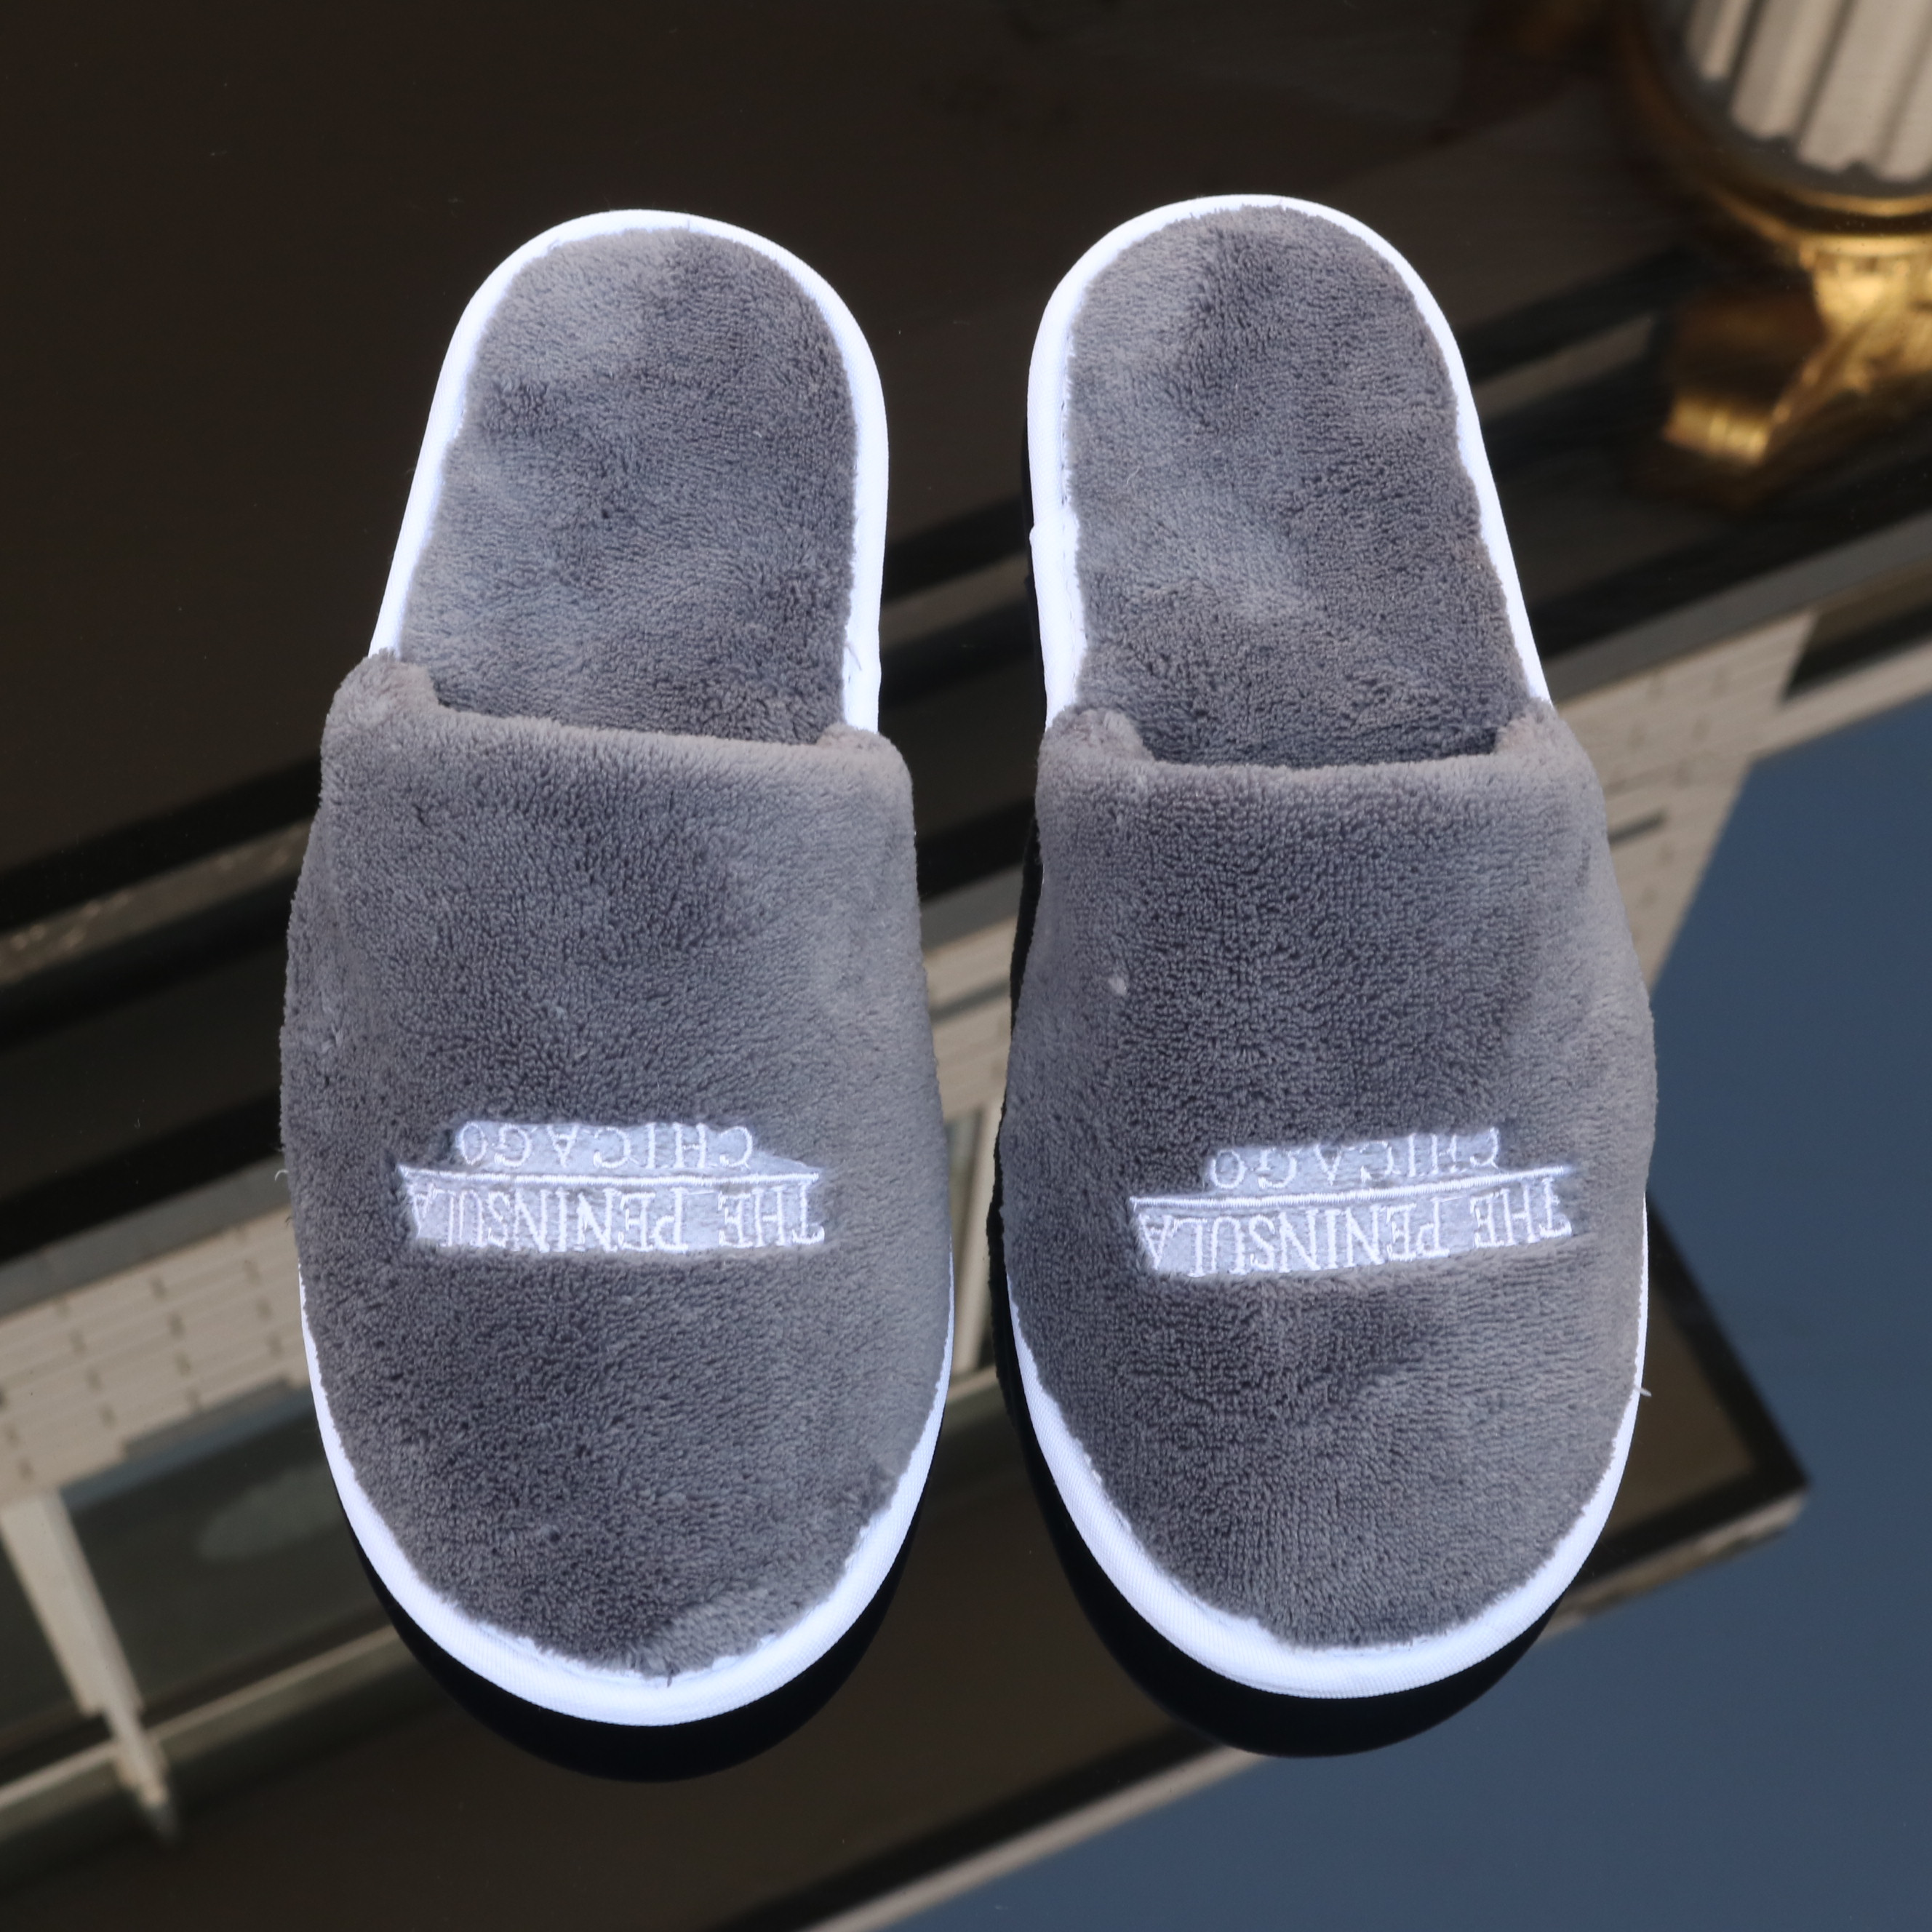 TPR sole cotton coral fleece hotel slippers washable hotel slippers